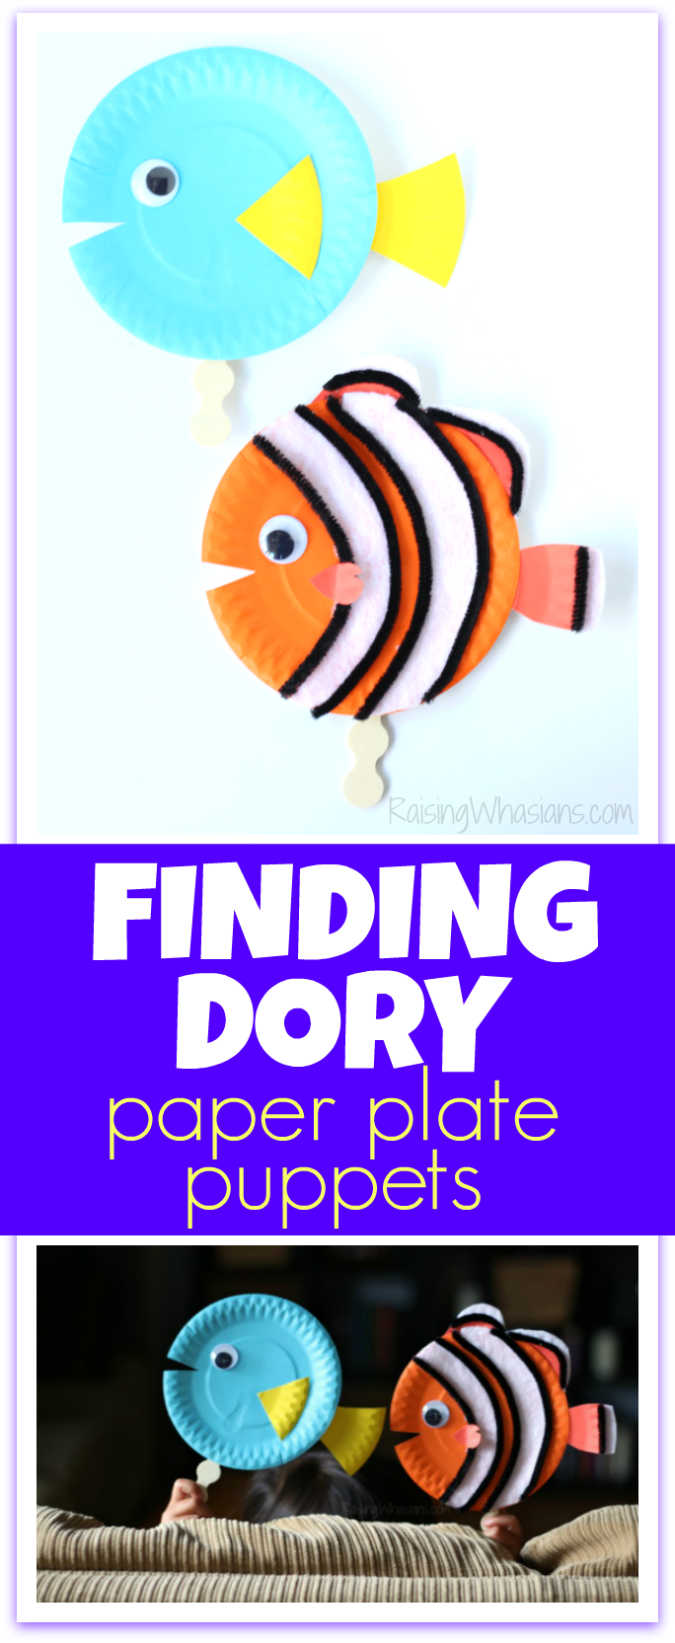 Finding Dory craft paper plate puppets Finding Dory Craft Paper Plate Puppets #FindingDoryEvent | Easy DIY Finding Dory Craft Idea with paper plates & Disney inspiration. Make Nemo & Dory #FindingNemo #FindingDory #Disney #Craft #PartyPlanning #DIY #DisneyParty #DisneyDIY